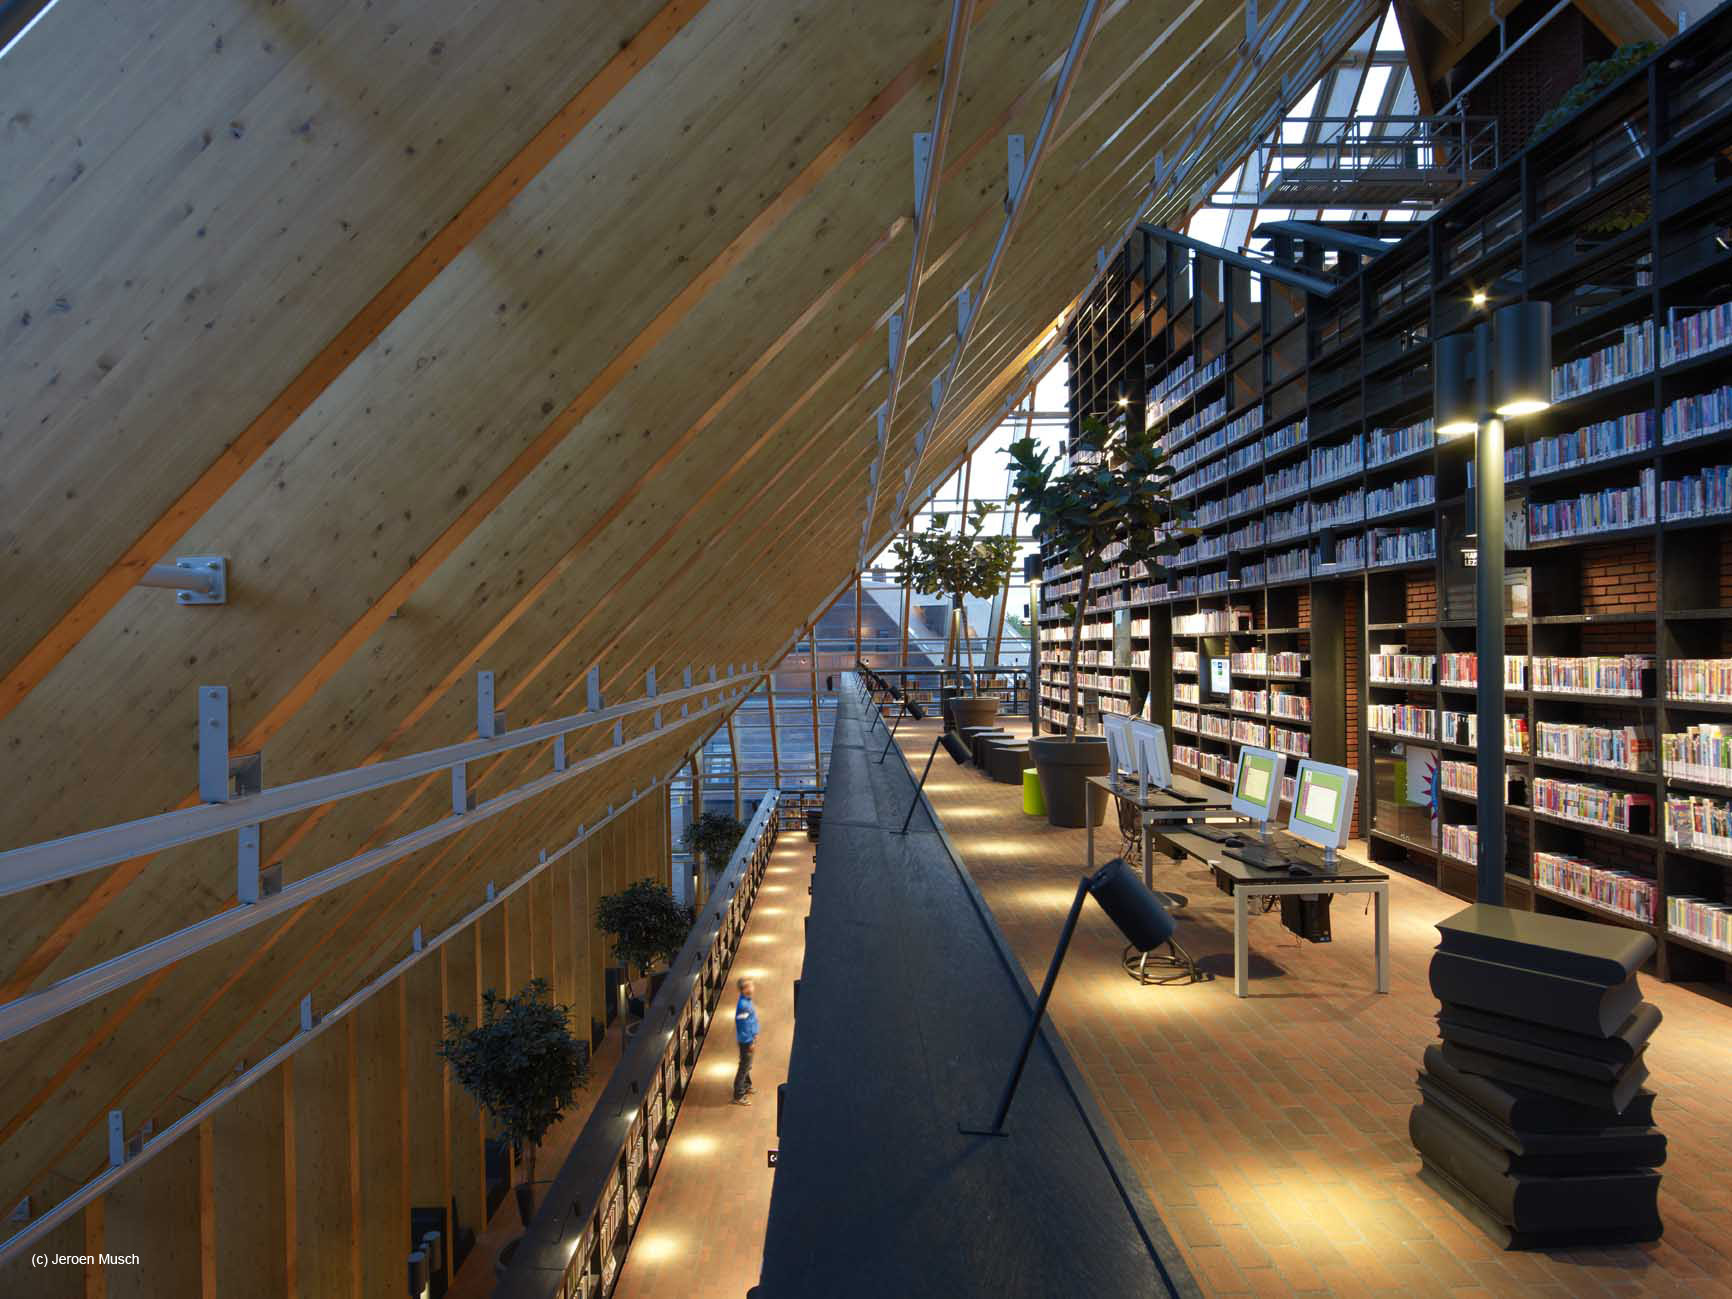 Open Call: Prize Searches for World's Best Public Library